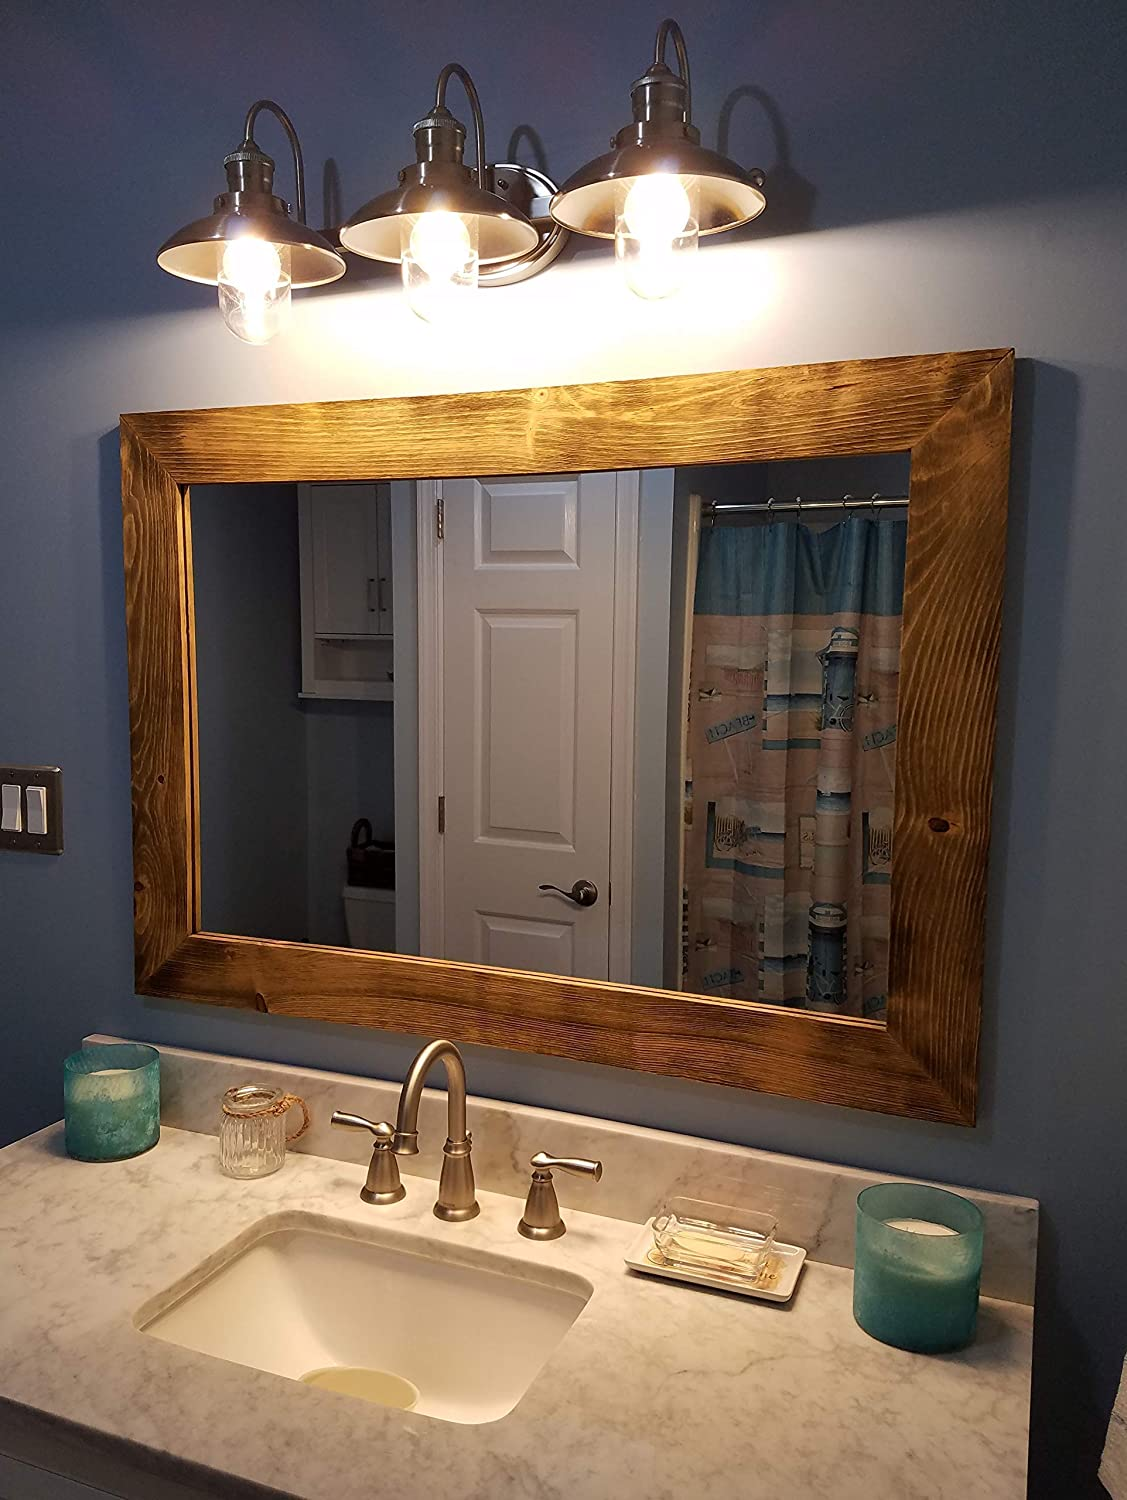 Merveilleux Shiplap Large Wood Framed Mirror Available In 4 Sizes And 20 Colors: Shown  In Driftwood Stain   Large Wall Mirror   Rustic Barnwood Style   Bathroom  Vanity ...